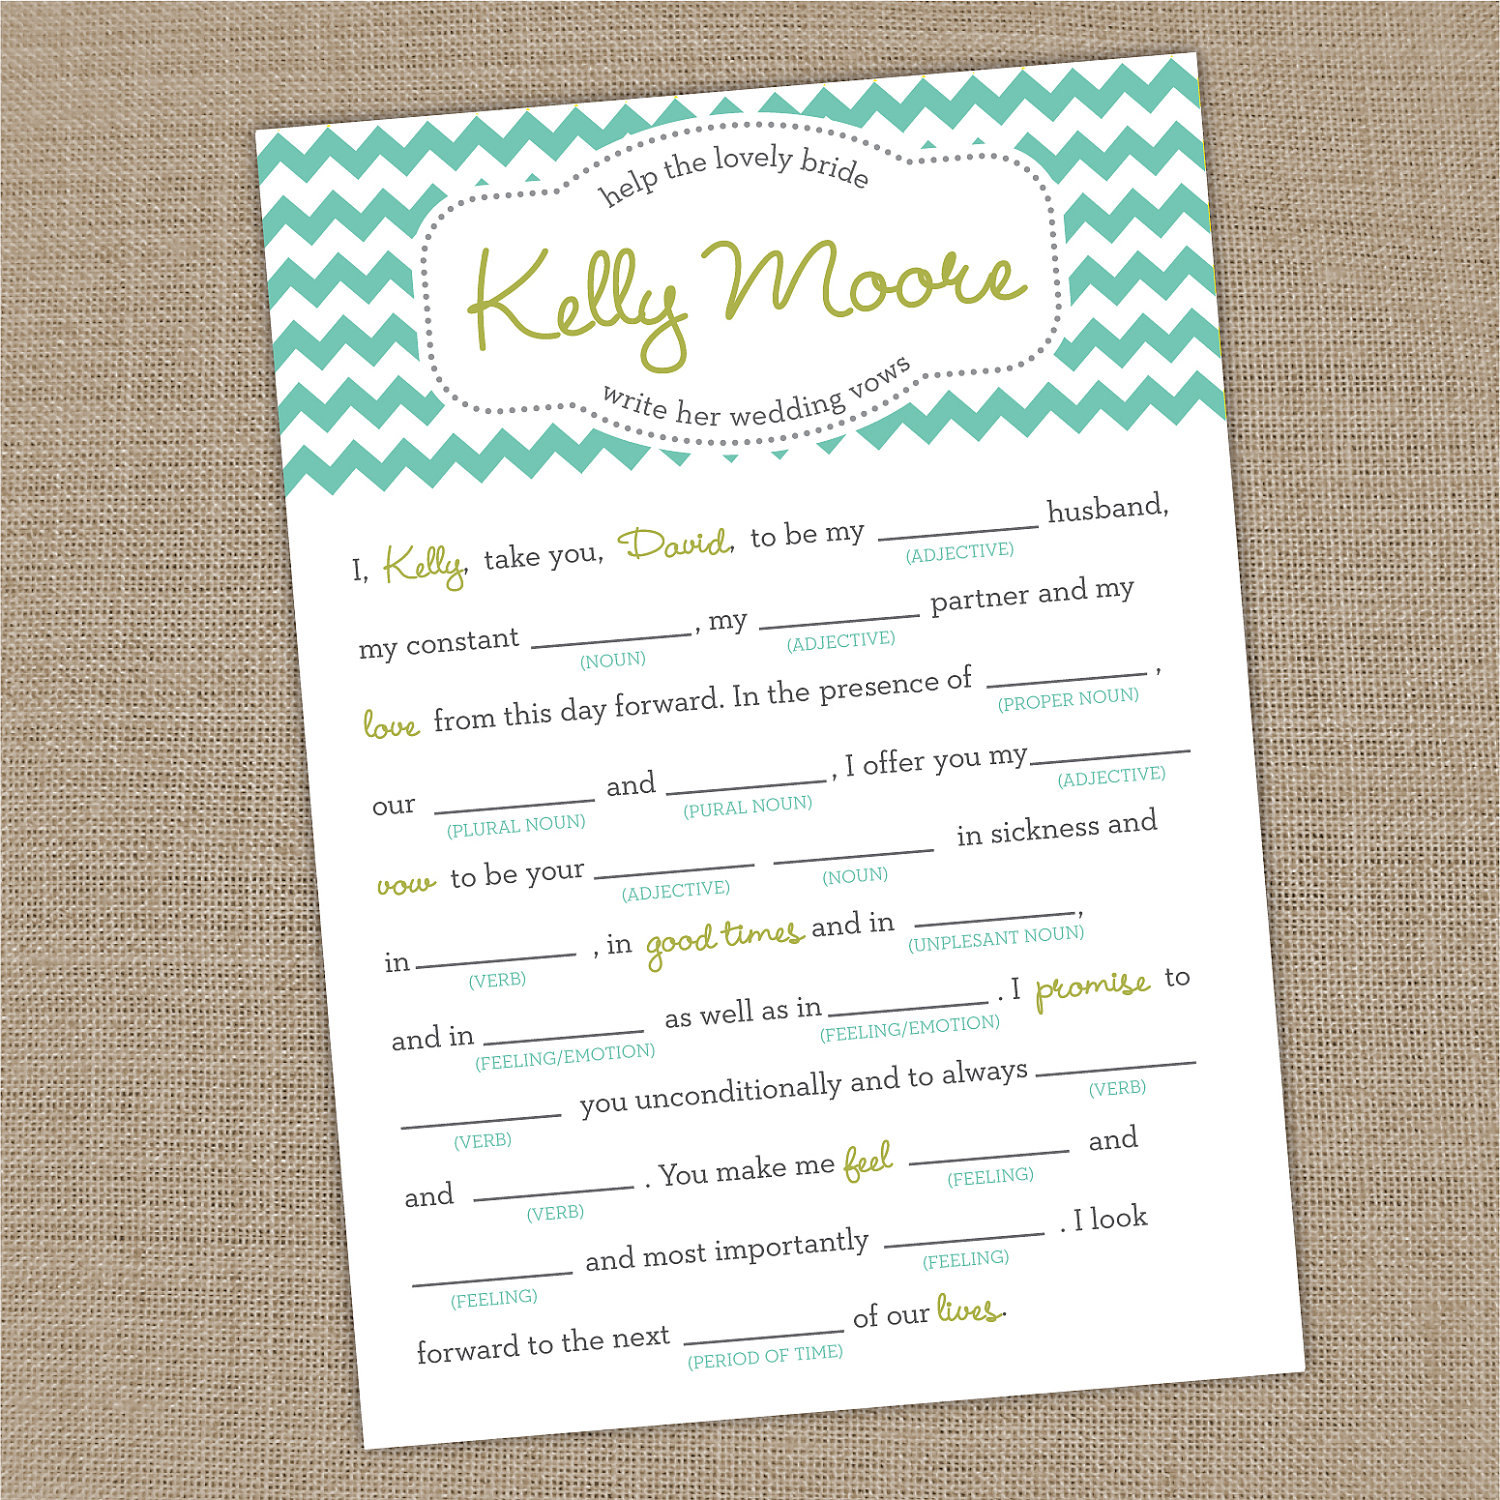 Wedding vows on pinterest wedding vows vows and funny for Vow writing template